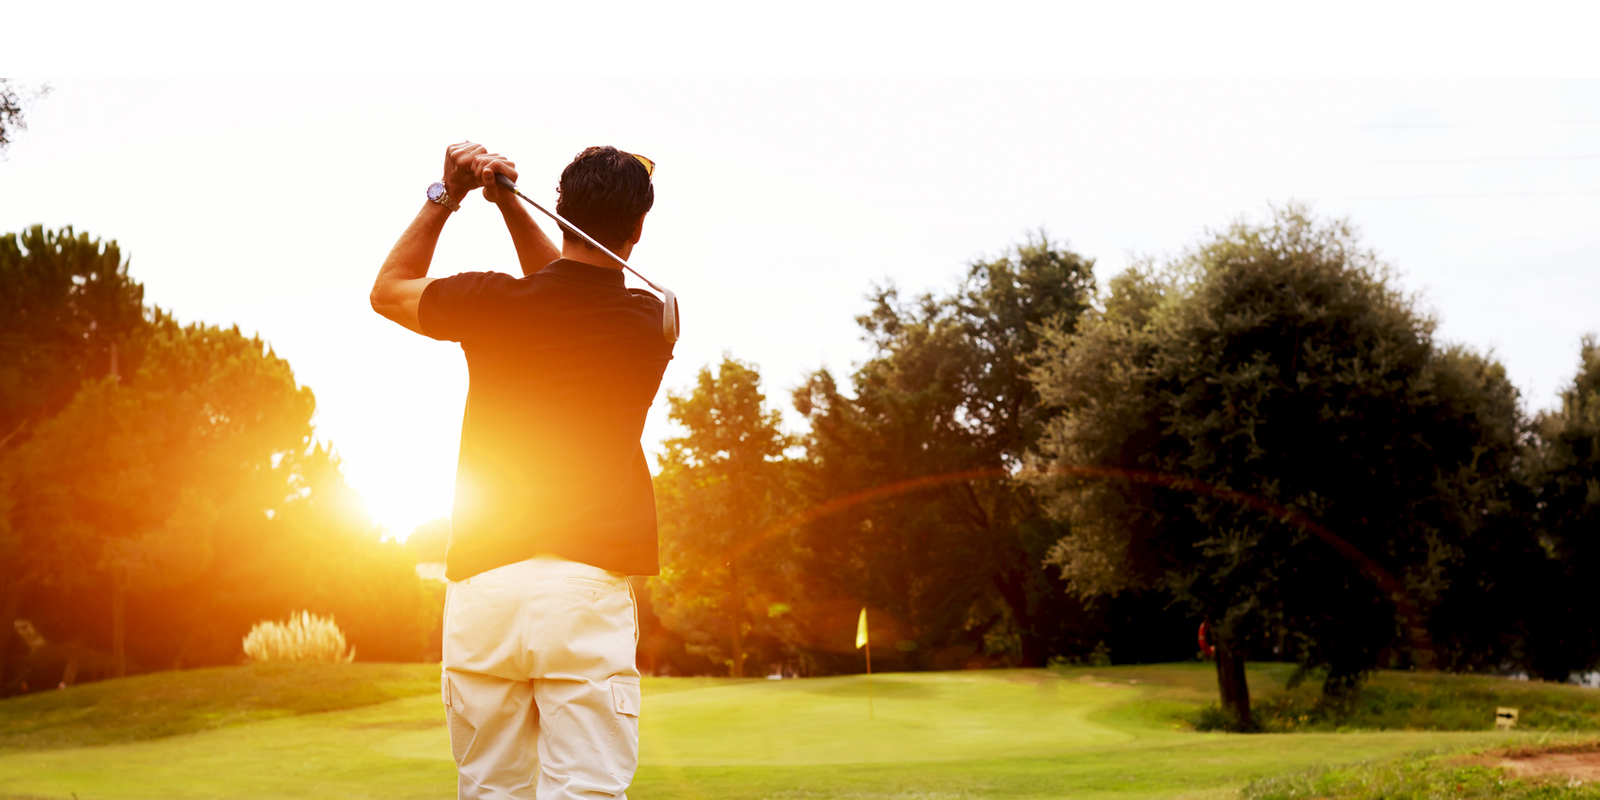 Sports and golf